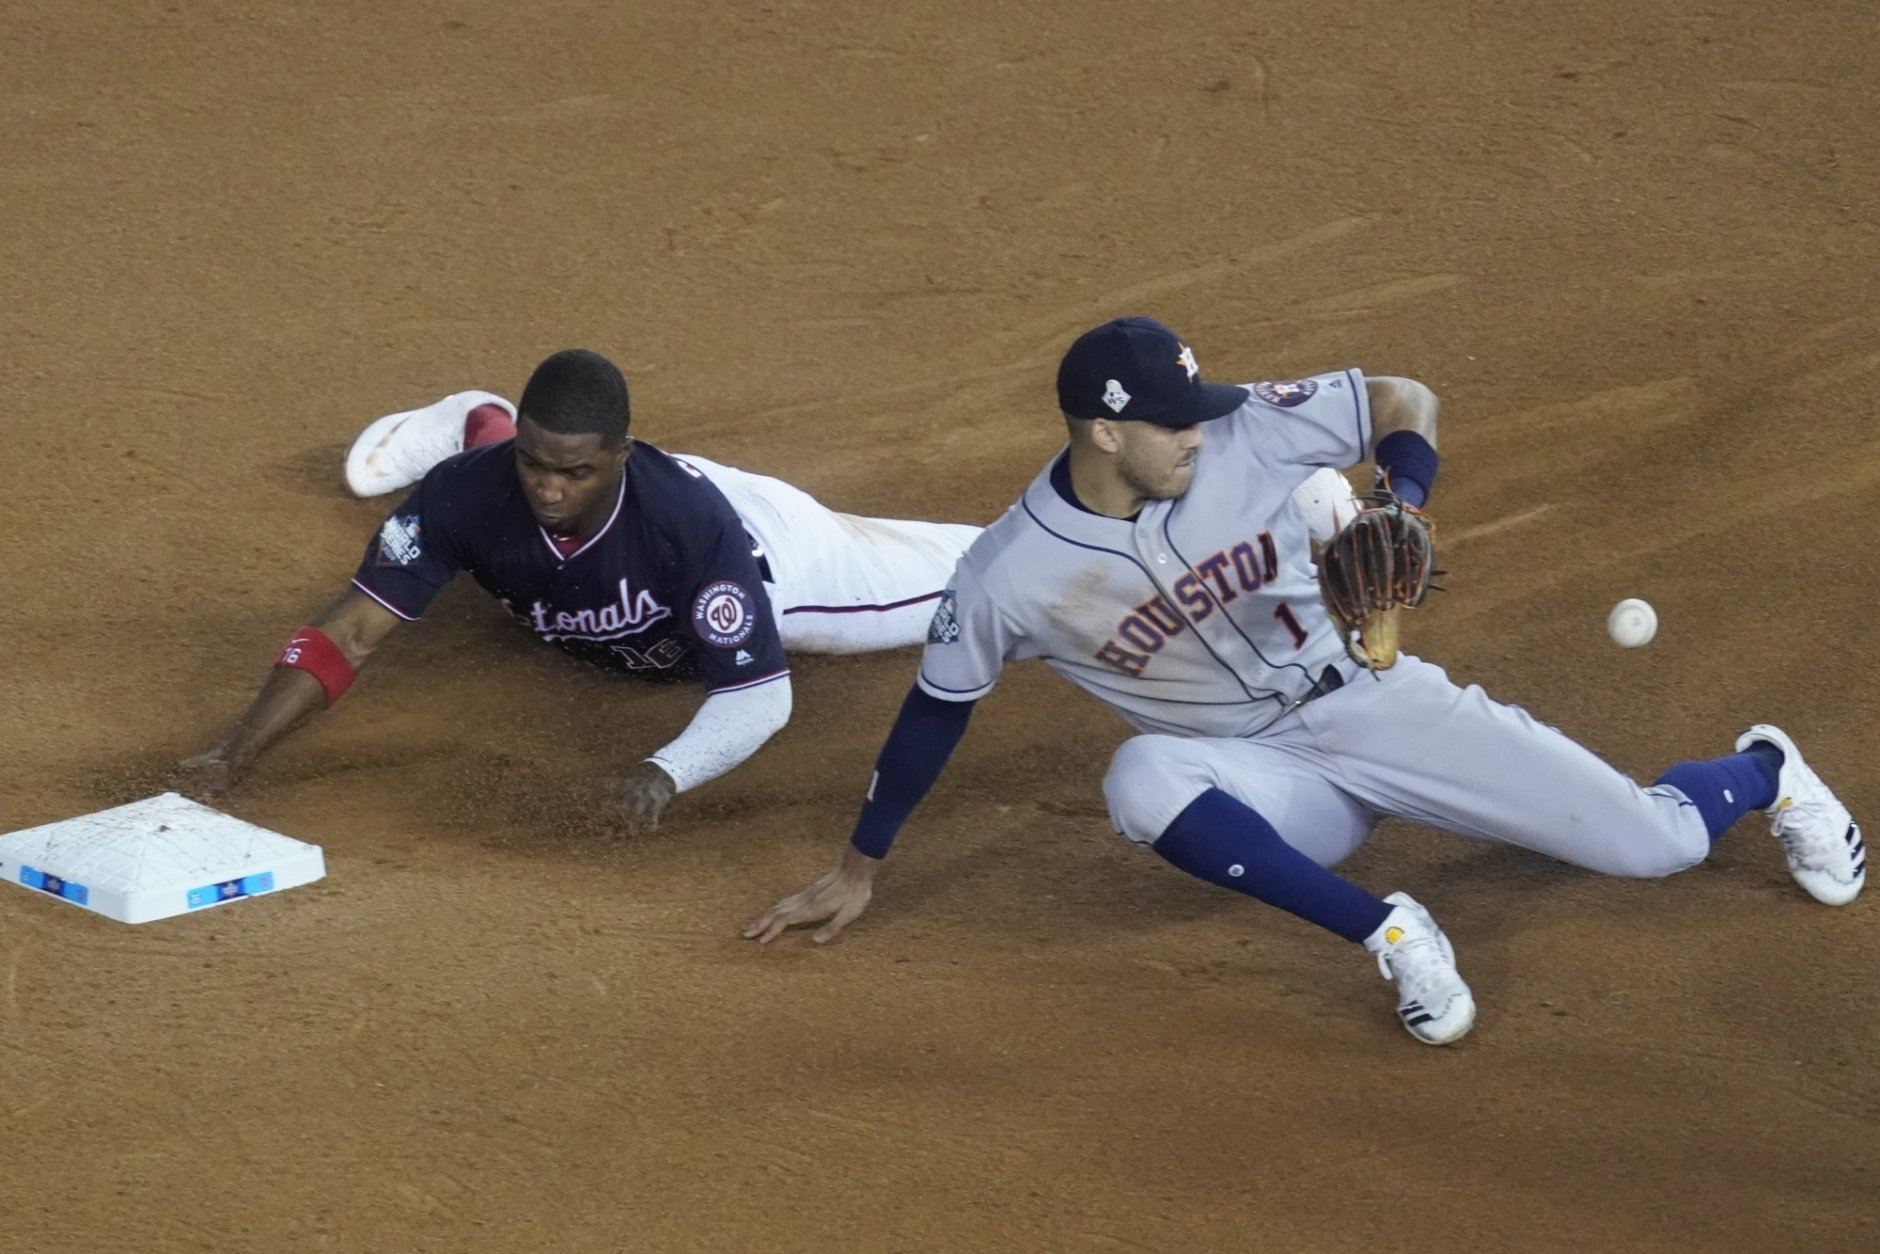 Washington Nationals' Victor Robles steals second with Houston Astros' Carlos Correa covering during the sixth inning of Game 3 of the baseball World Series Friday, Oct. 25, 2019, in Washington. (AP Photo/Pablo Martinez Monsivais)